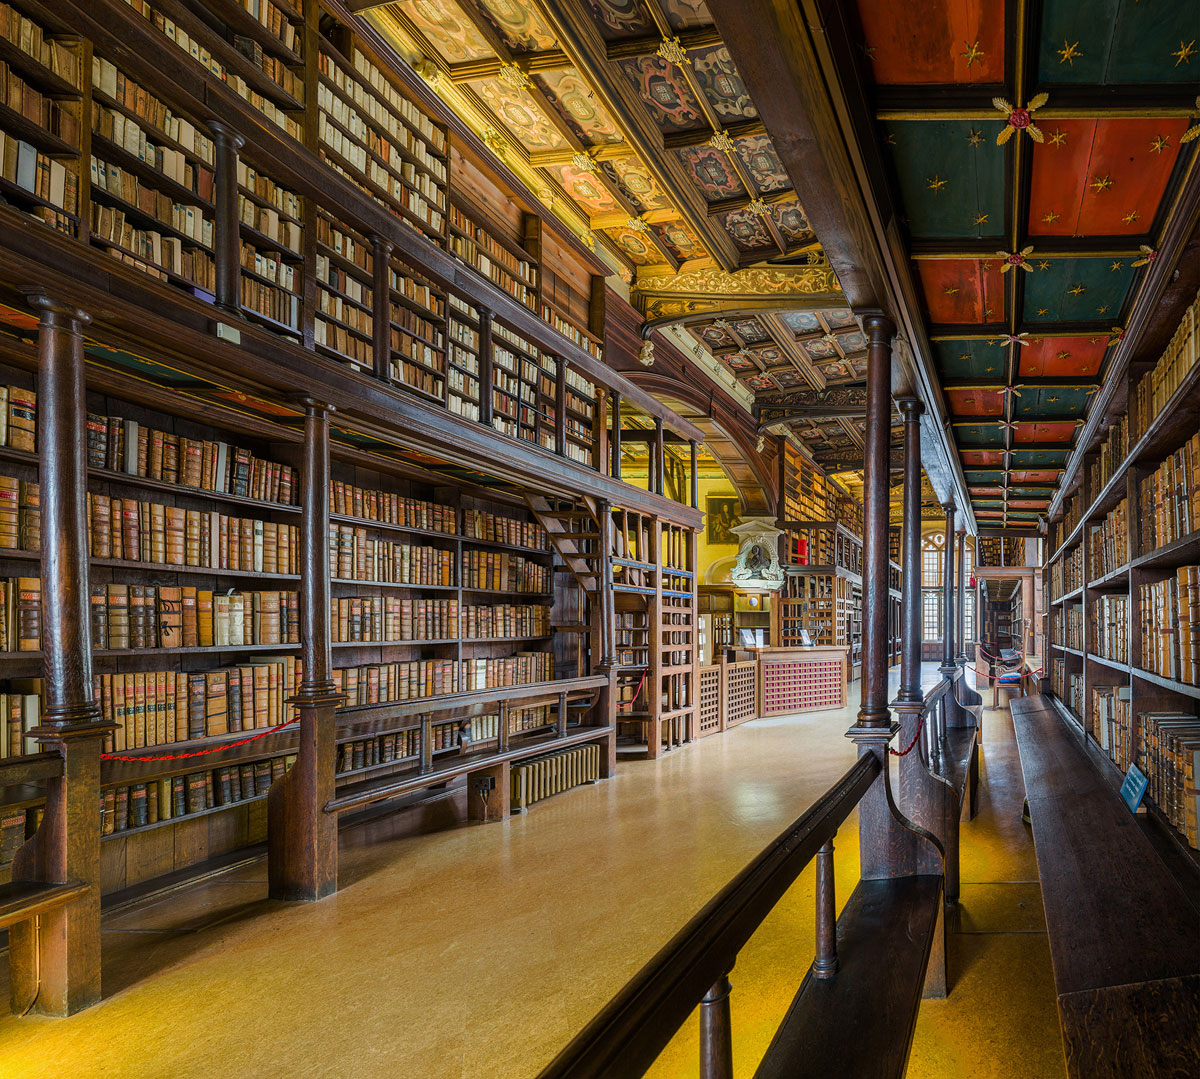 duke humfreys library bodleian libary university of oxford by david iliff 3 This Reading Room at the University of Oxford is One of the Oldest in Europe